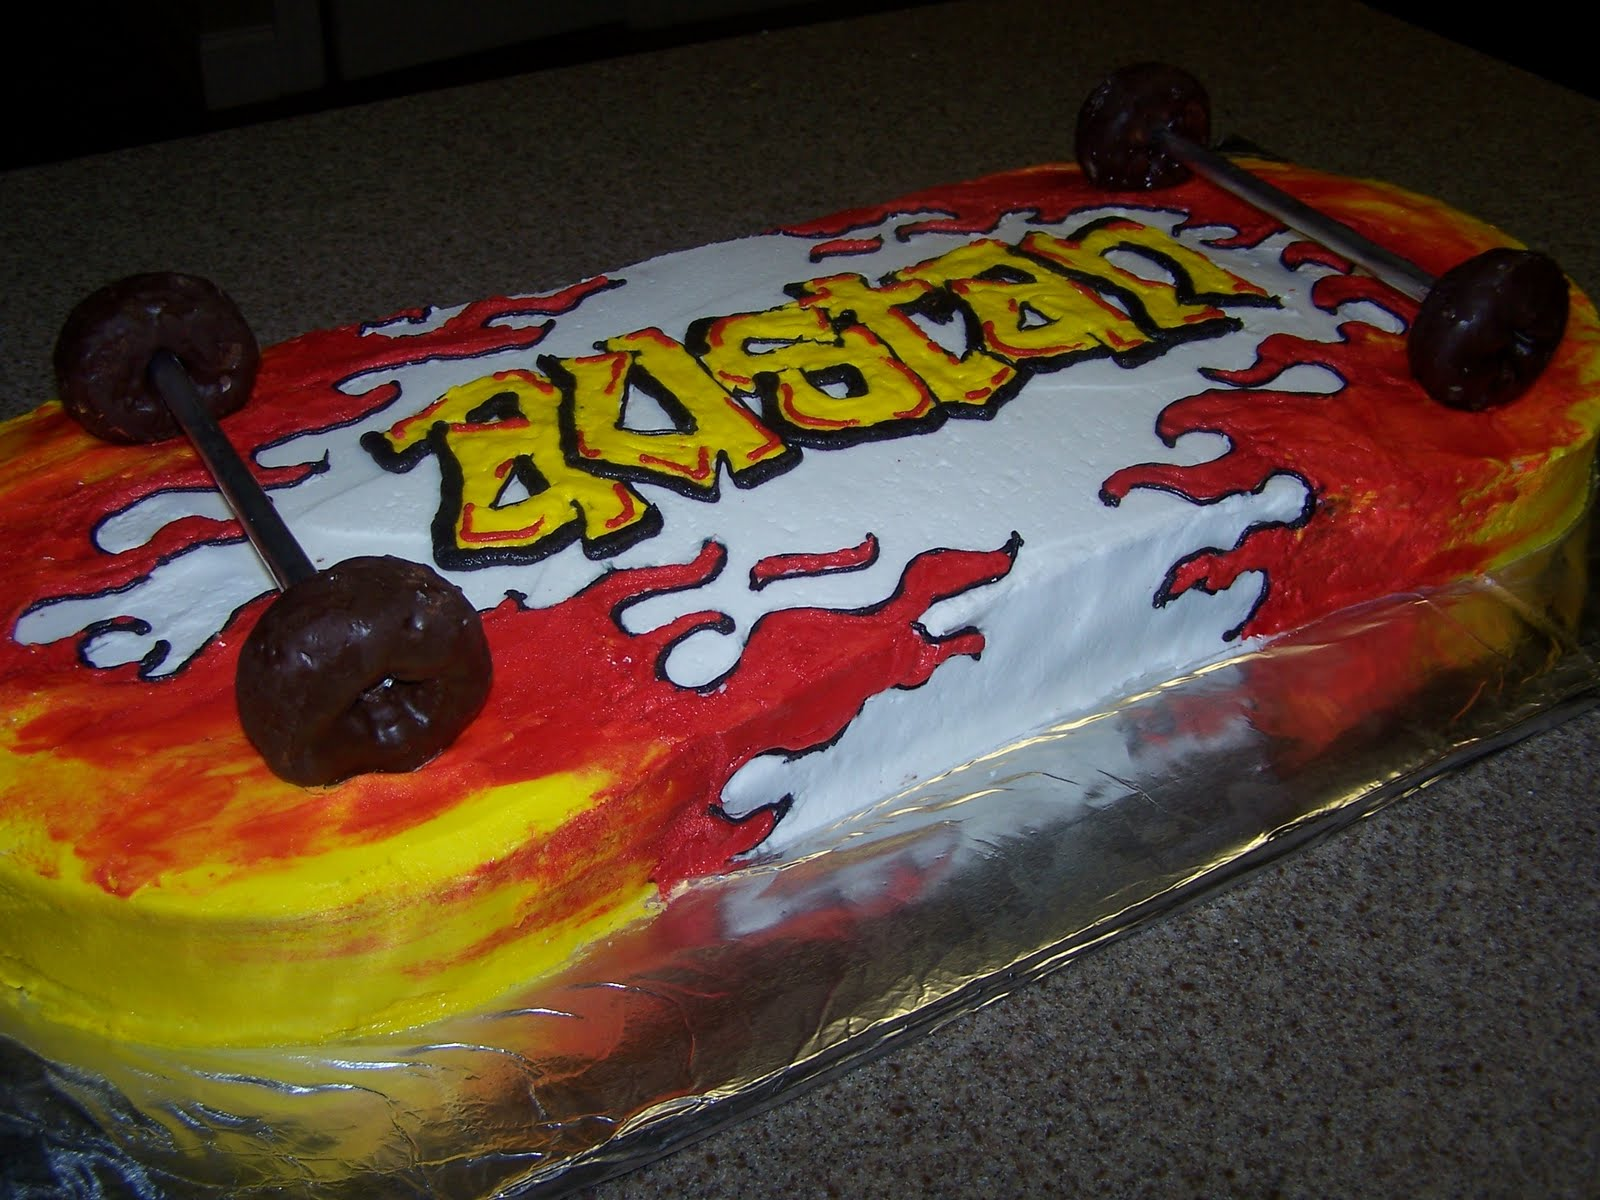 Creative Cakes N More Skateboard Cake